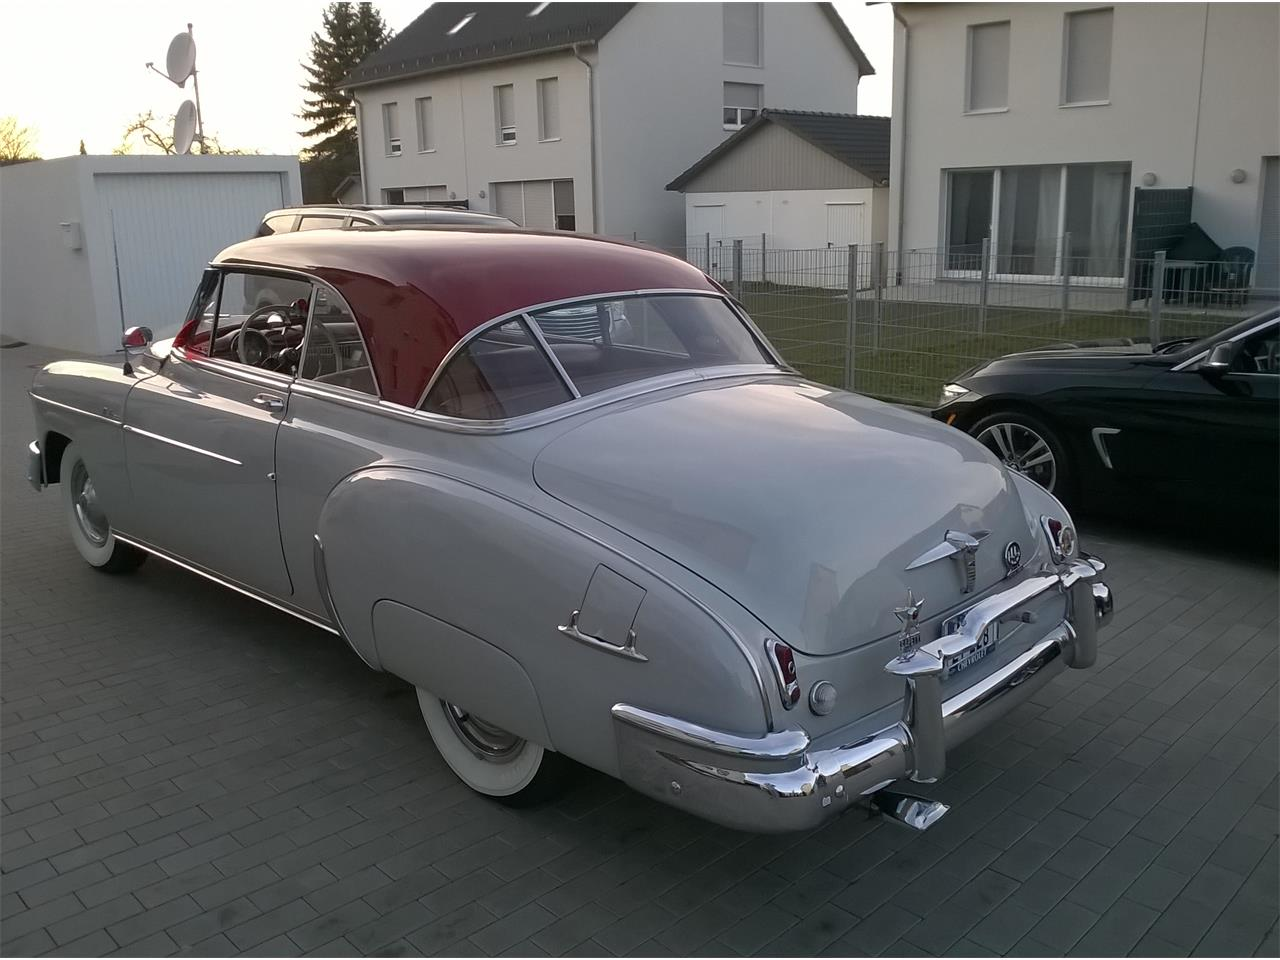 Large Picture of Classic 1950 Chevrolet Bel Air located in Washington Offered by a Private Seller - G97W